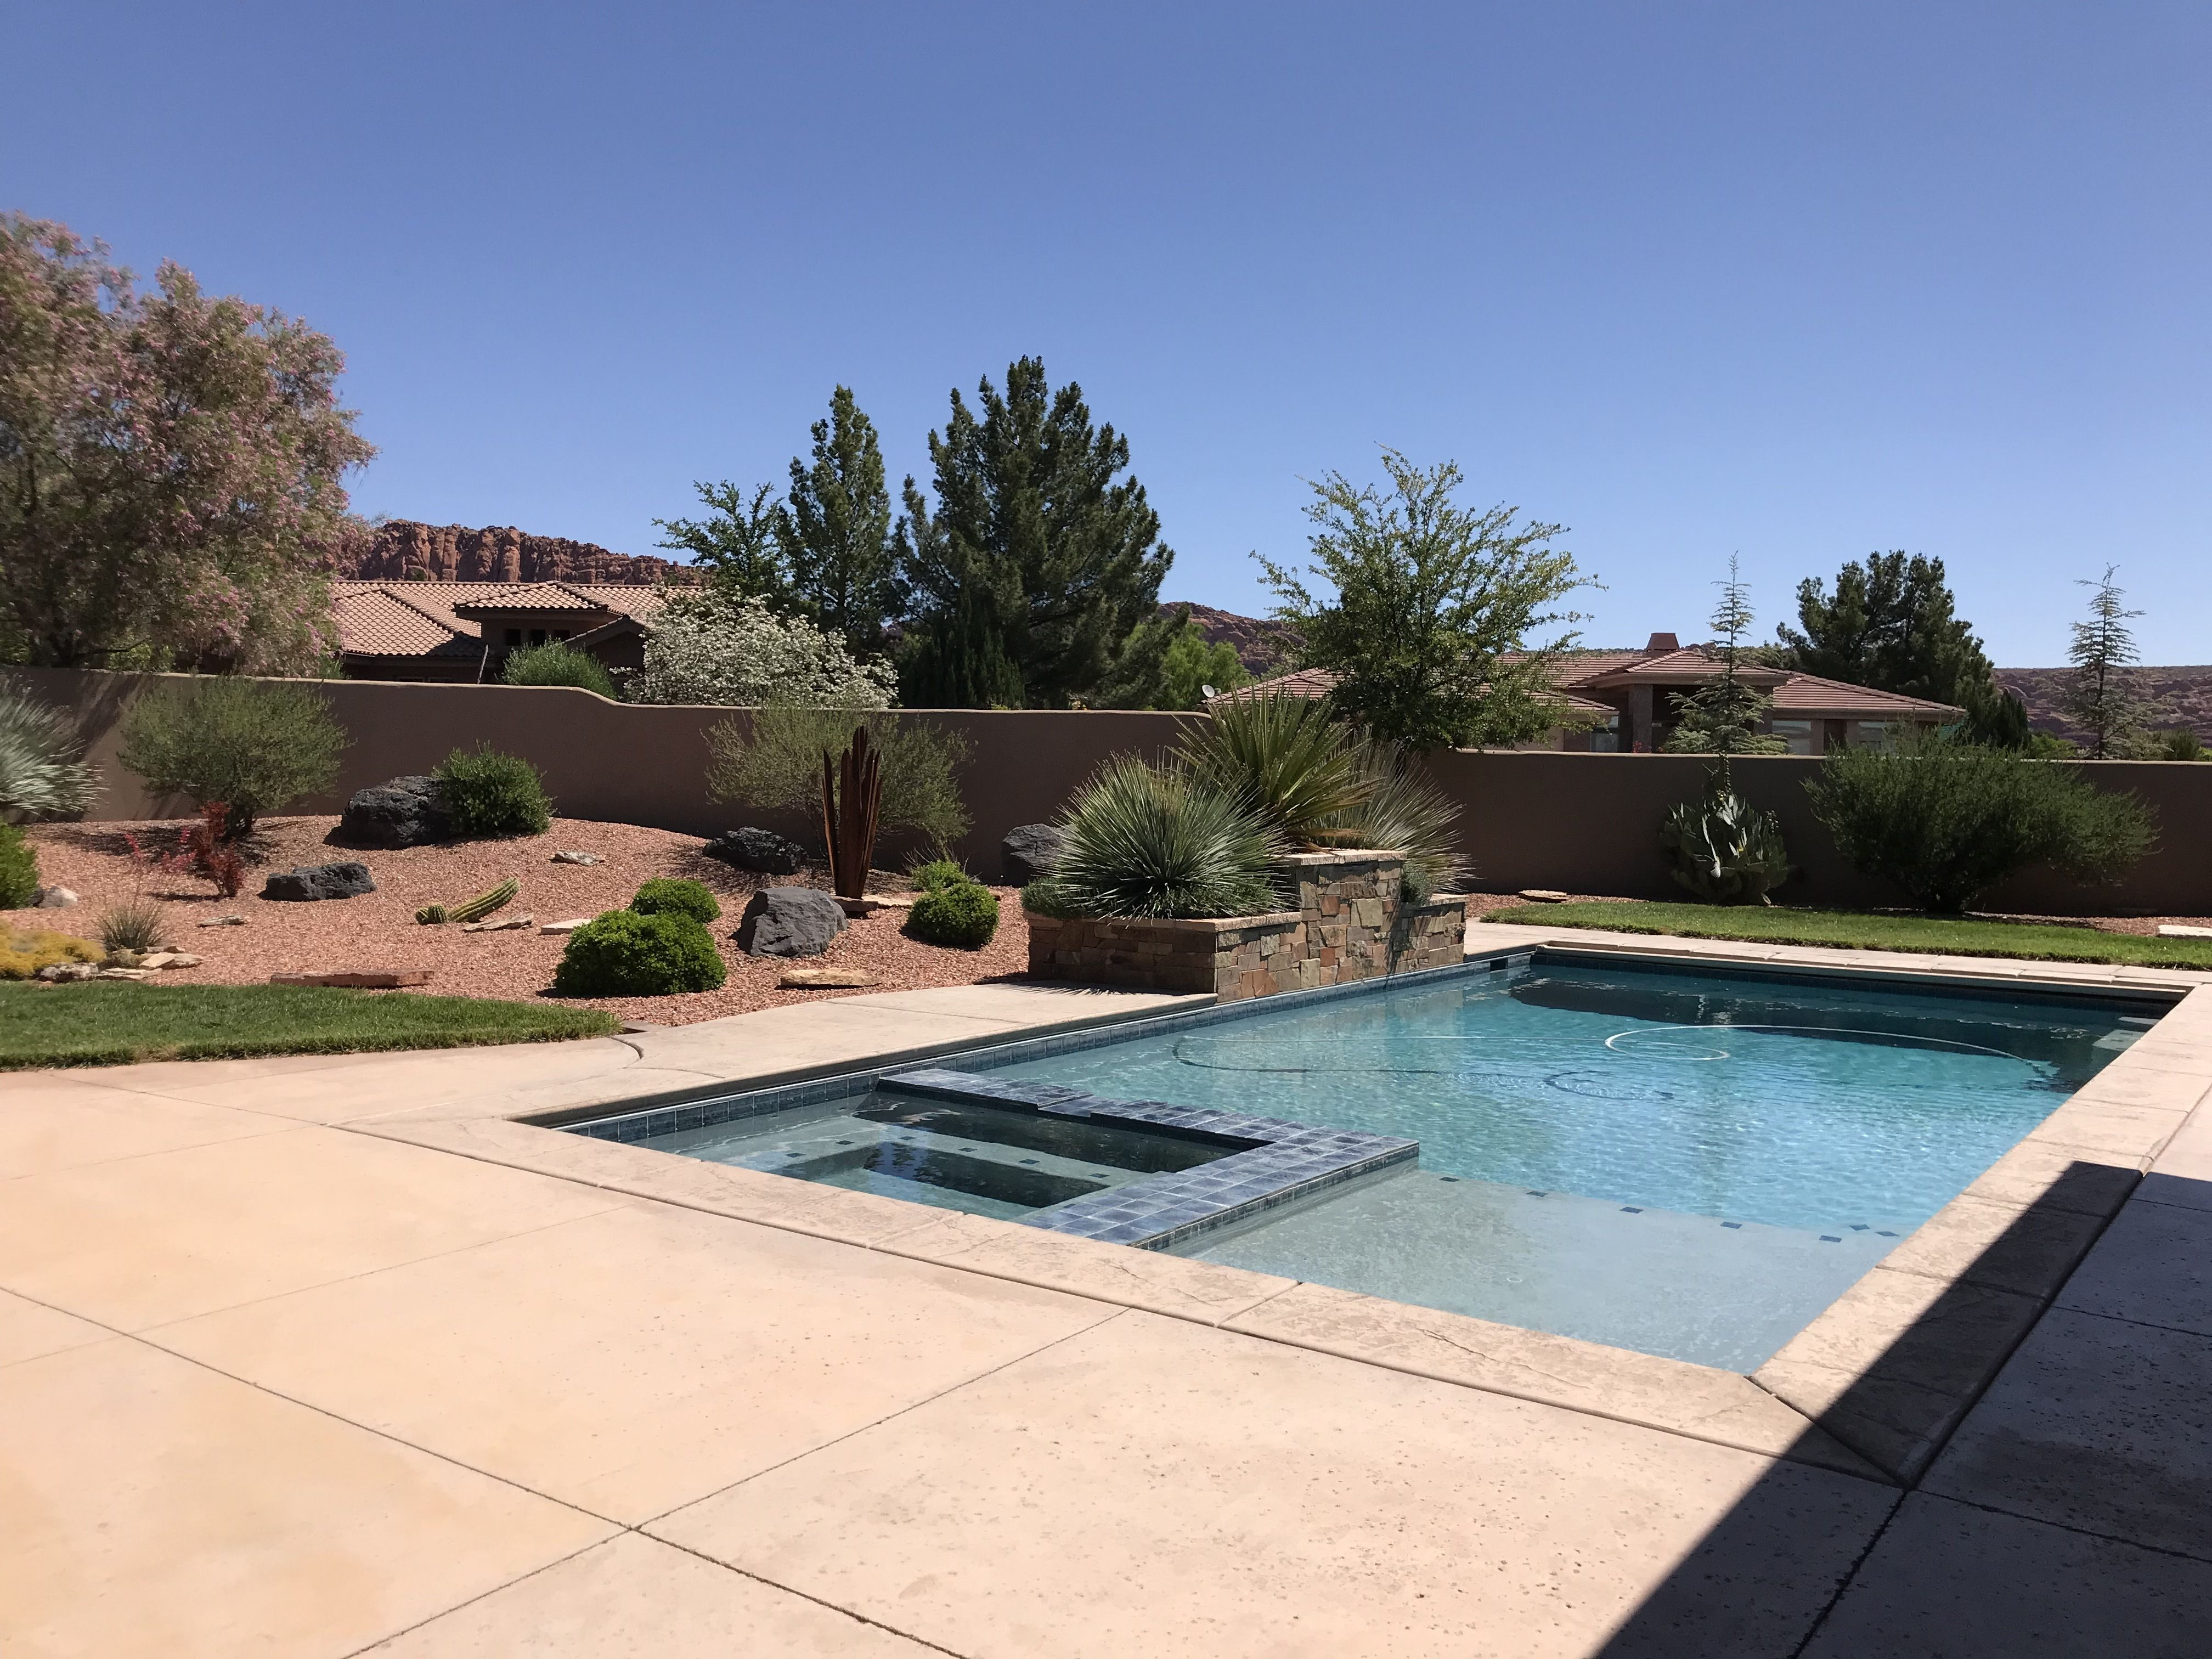 Homes For Sale With Pools Around St George Ut Pool St George Home